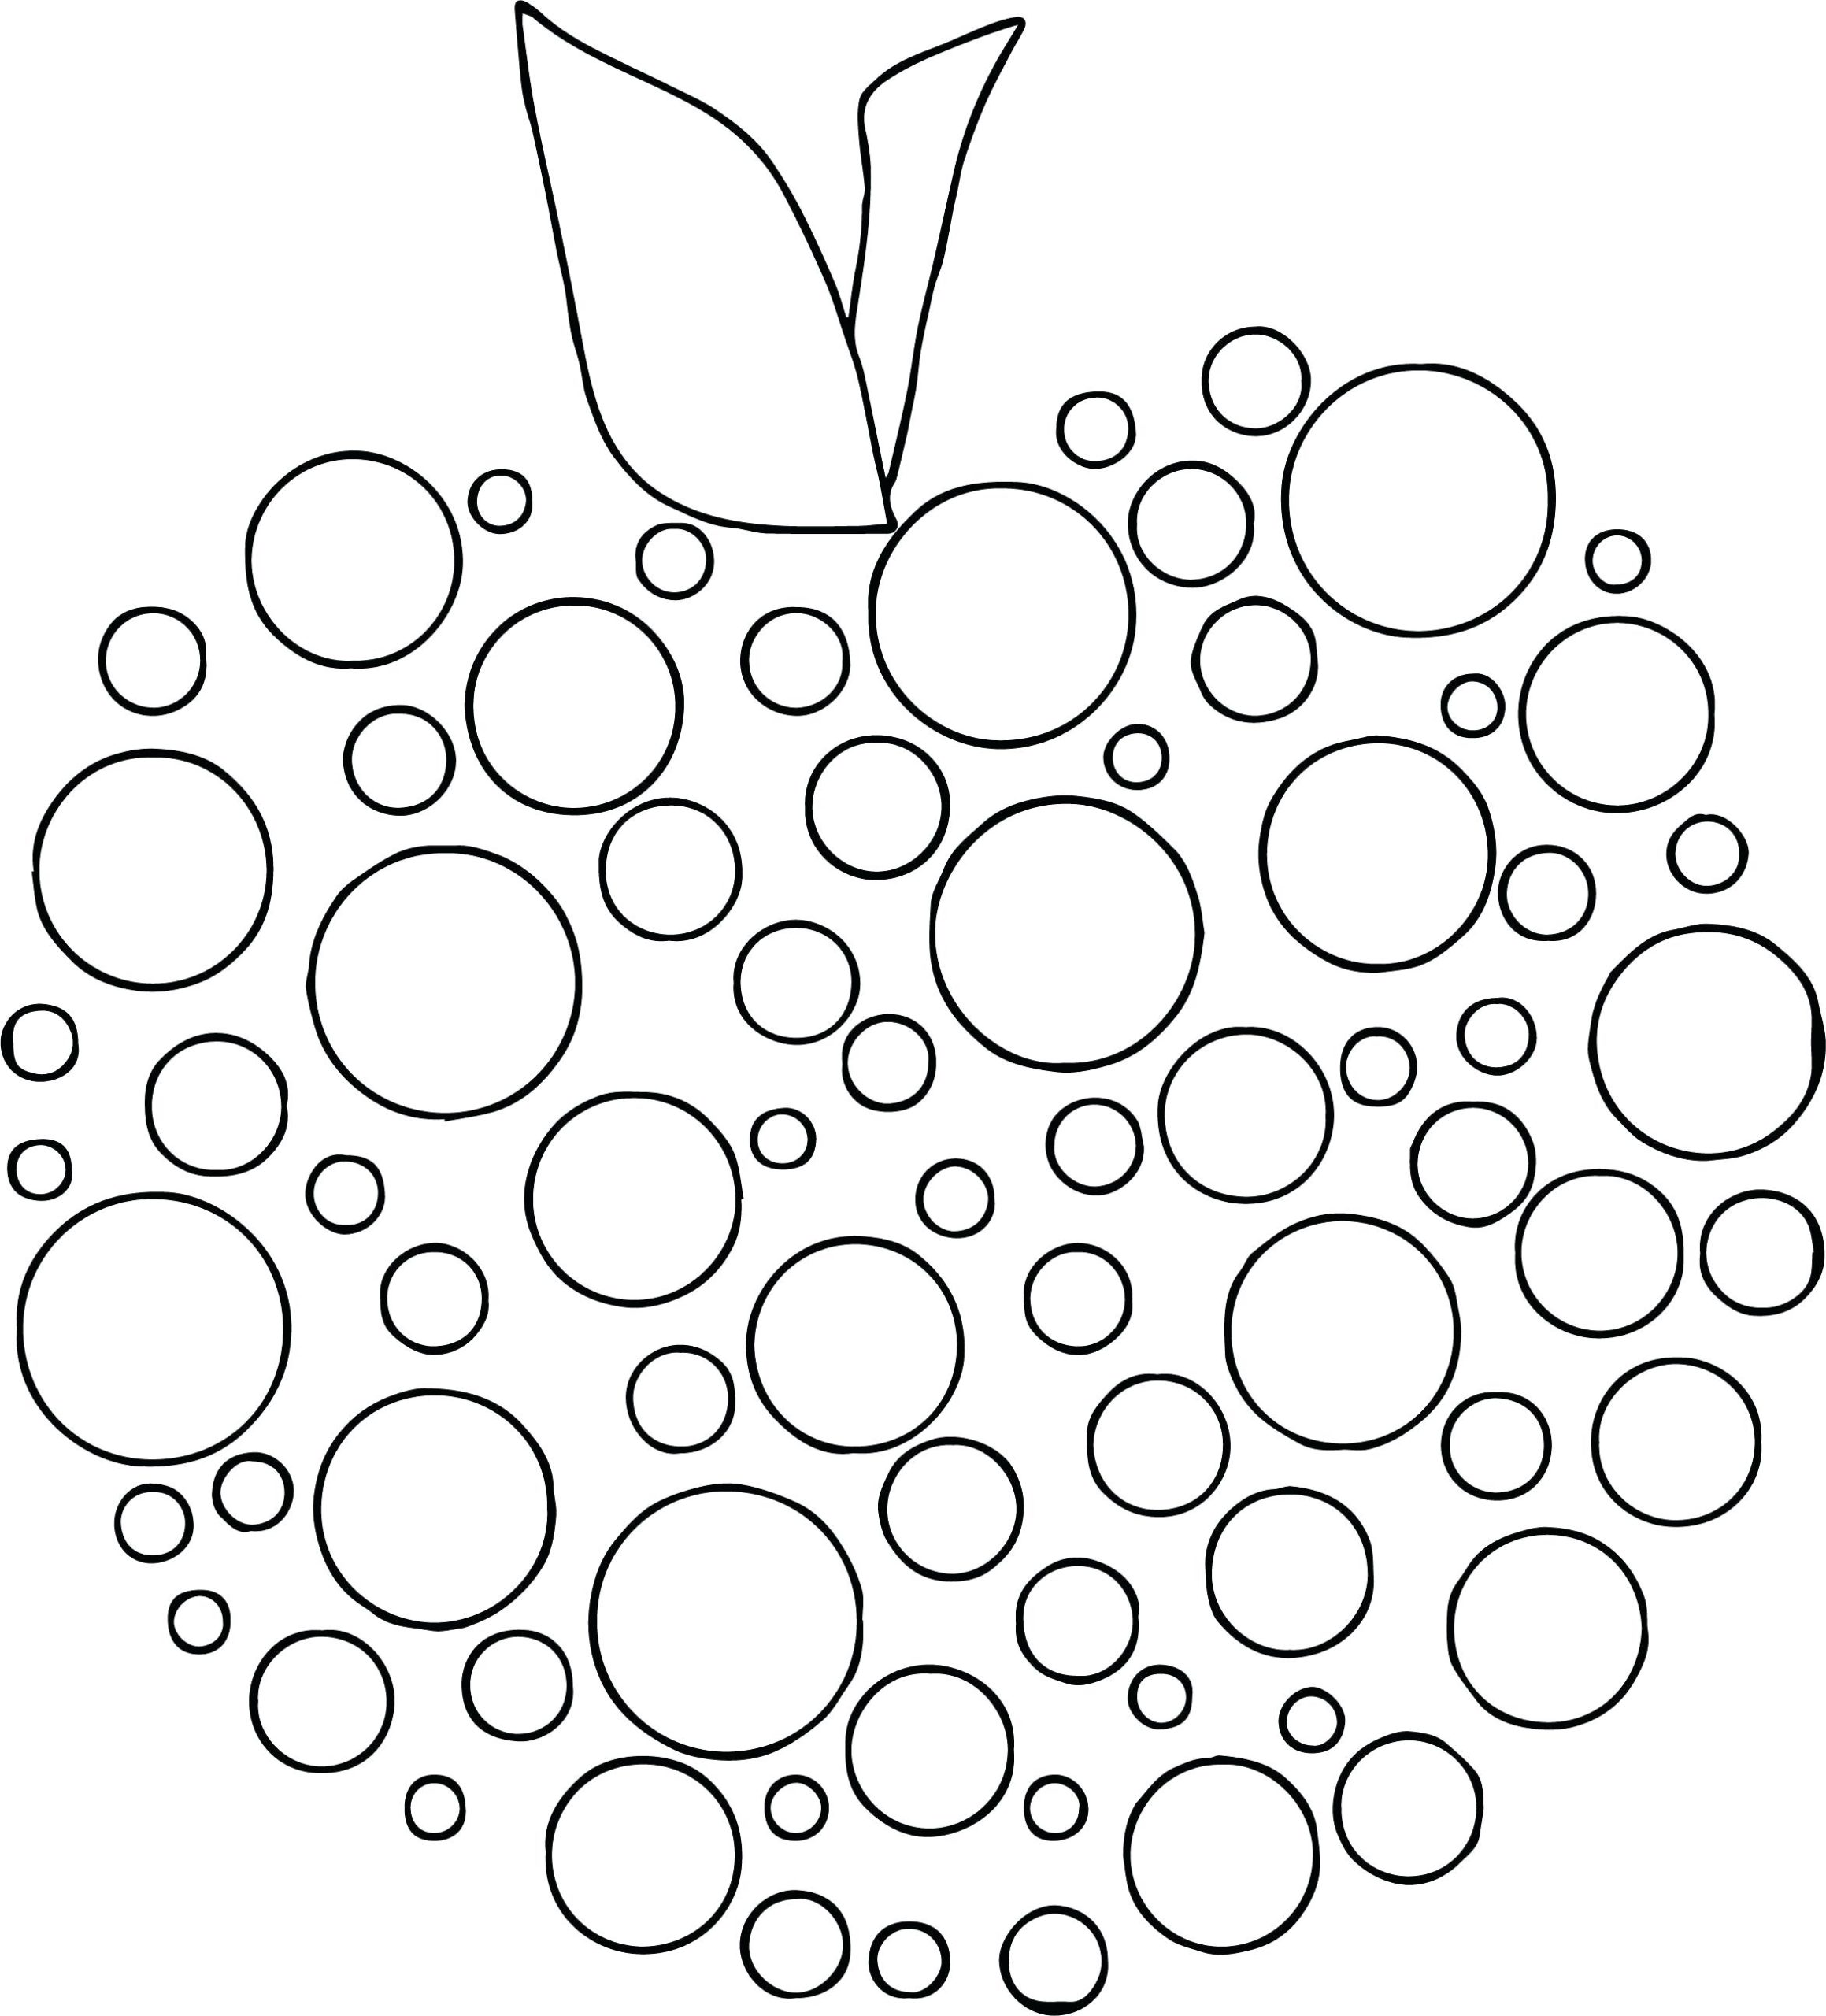 Hard Dots Coloring Pages